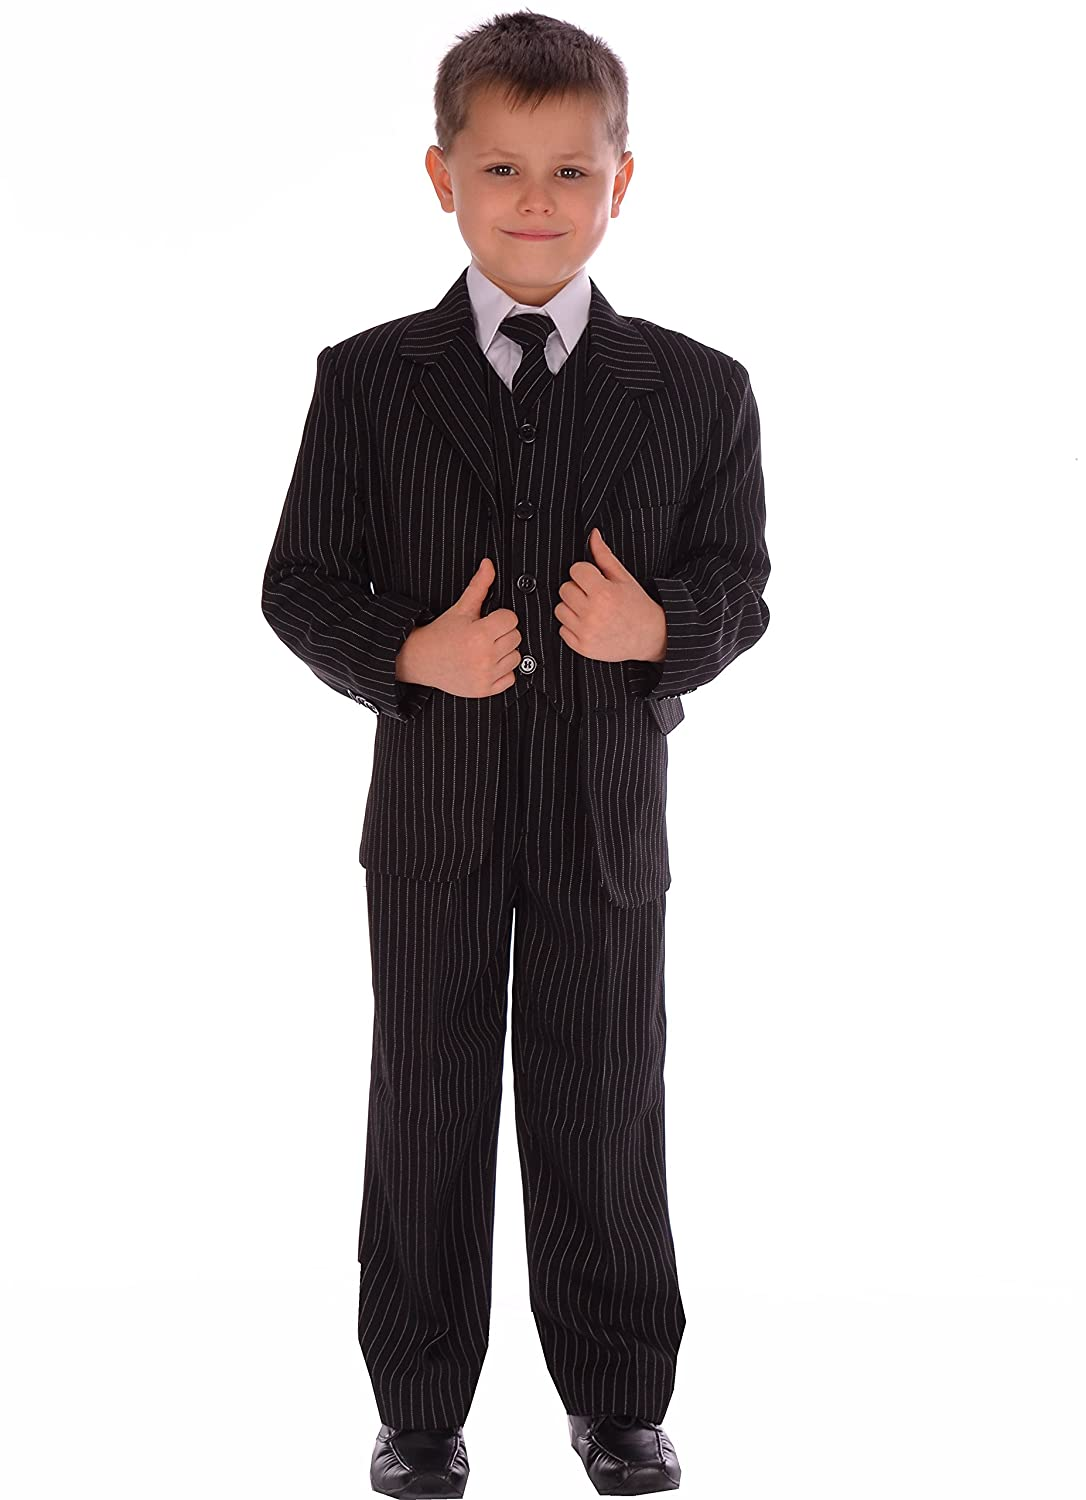 5-Piece Boys Suits Black Pinstripe Suit Wedding Formal Pageboy Usher Age 0-3 month to 14-15 years